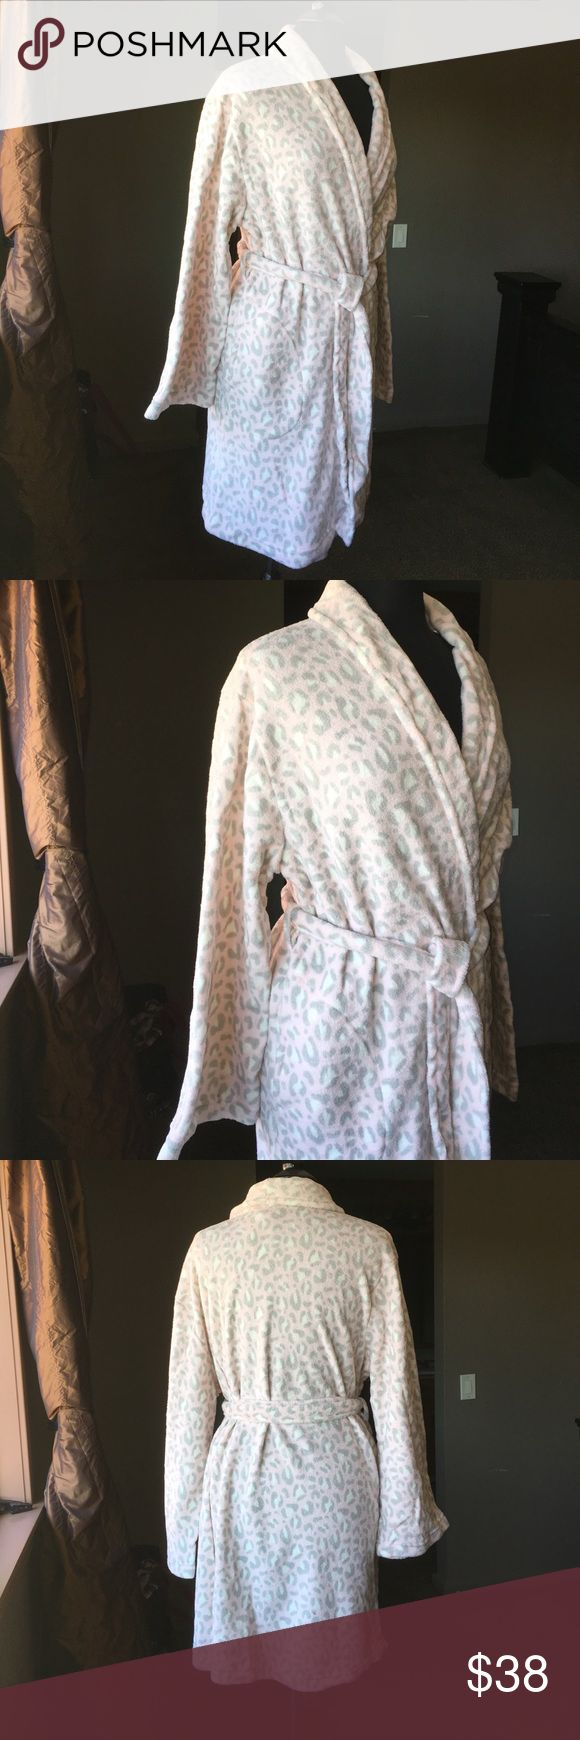 NWT Leopard soft short robe New with tags's leopard print short robe. Has pockets :) Super soft promotional gift from Ulta Ullta Intimates & Sleepwear Robes